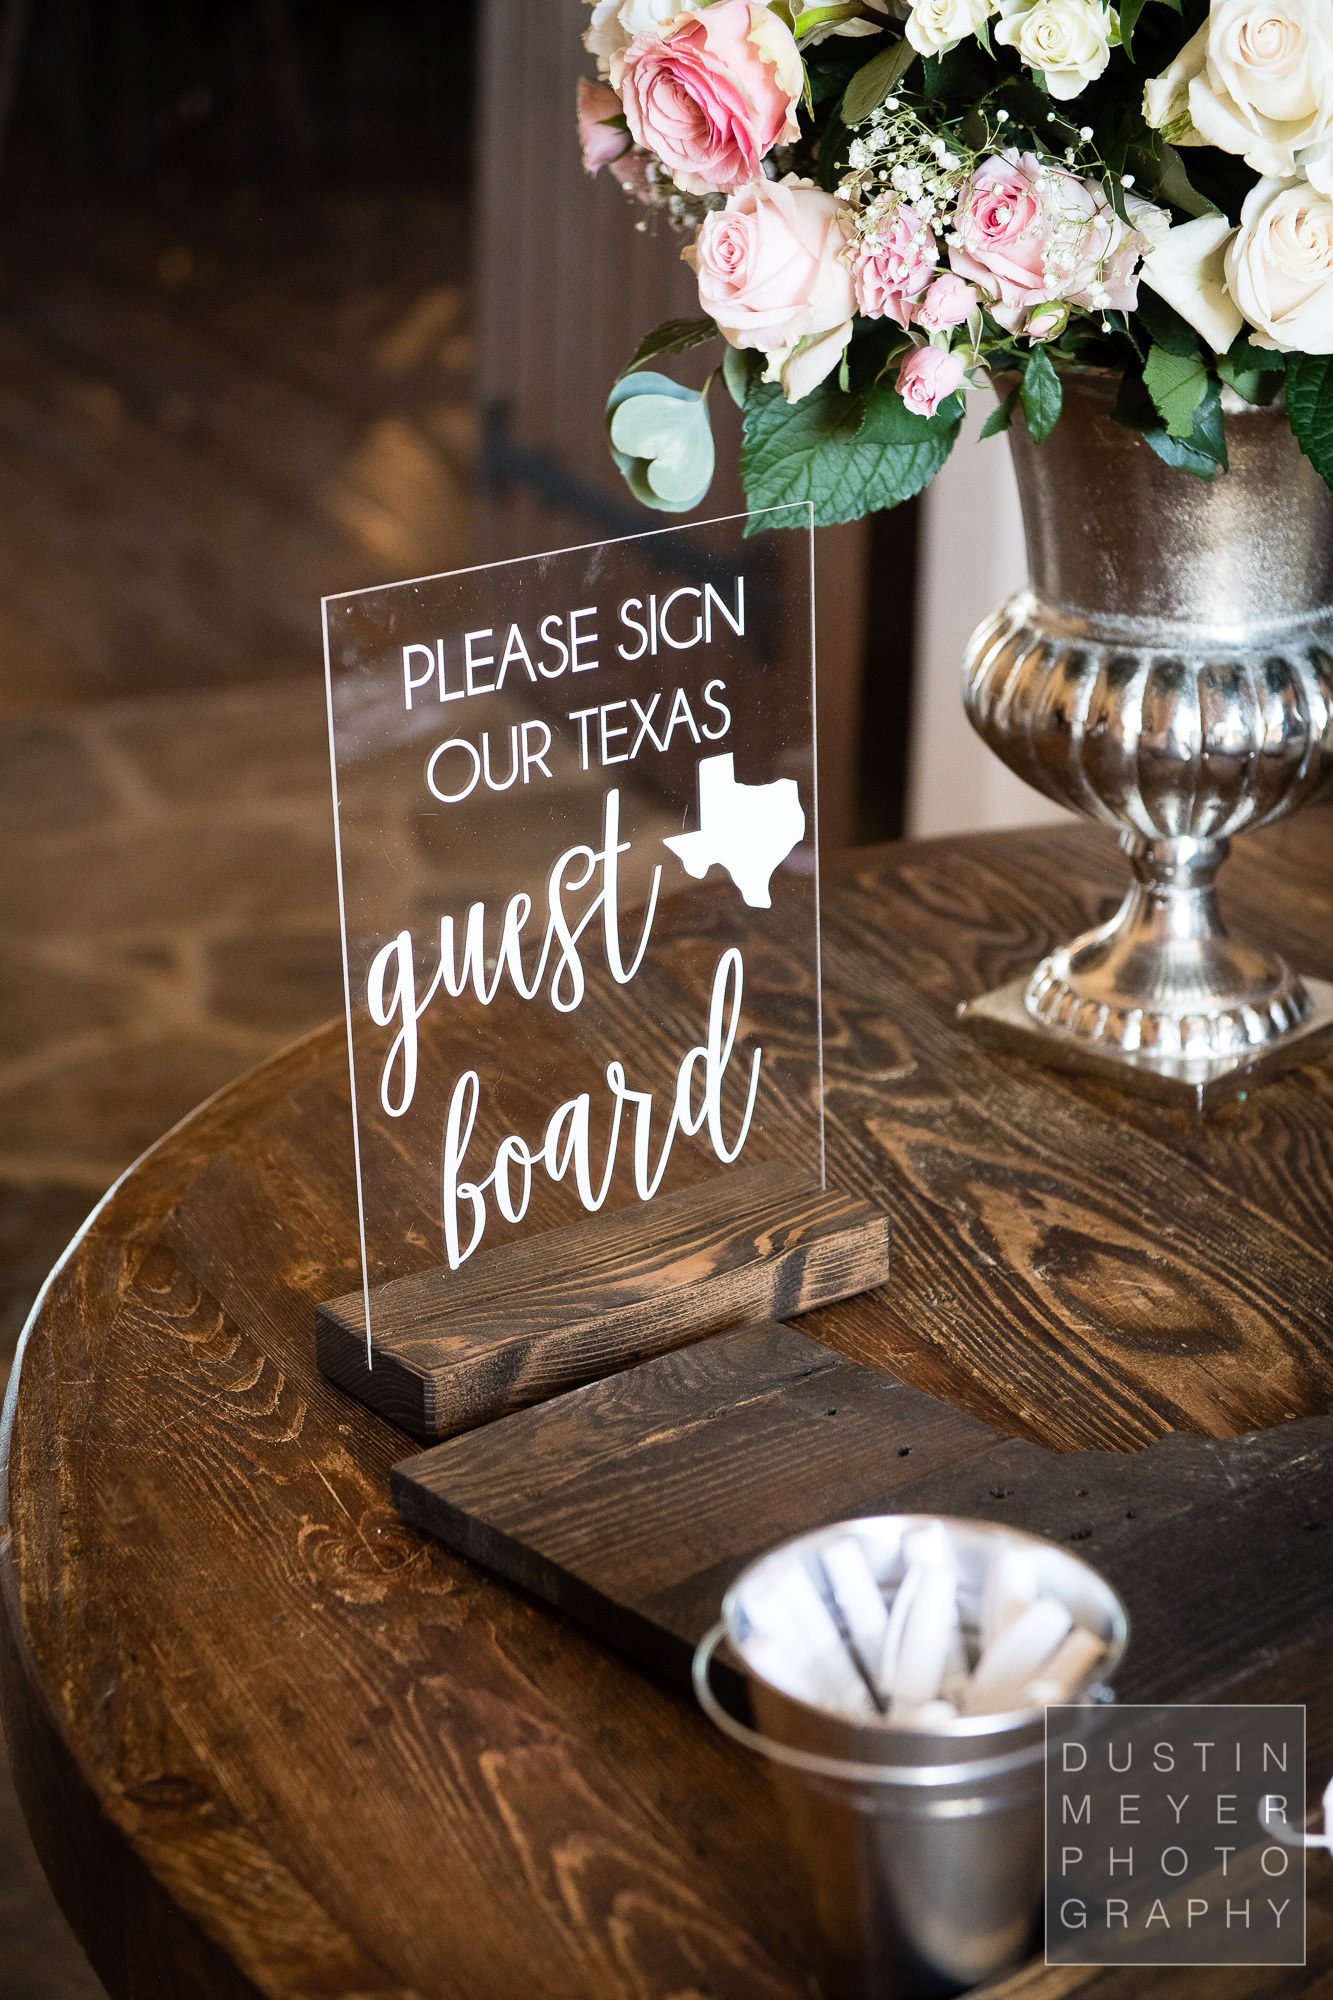 A custom wedding decoration for the guest sign-in album